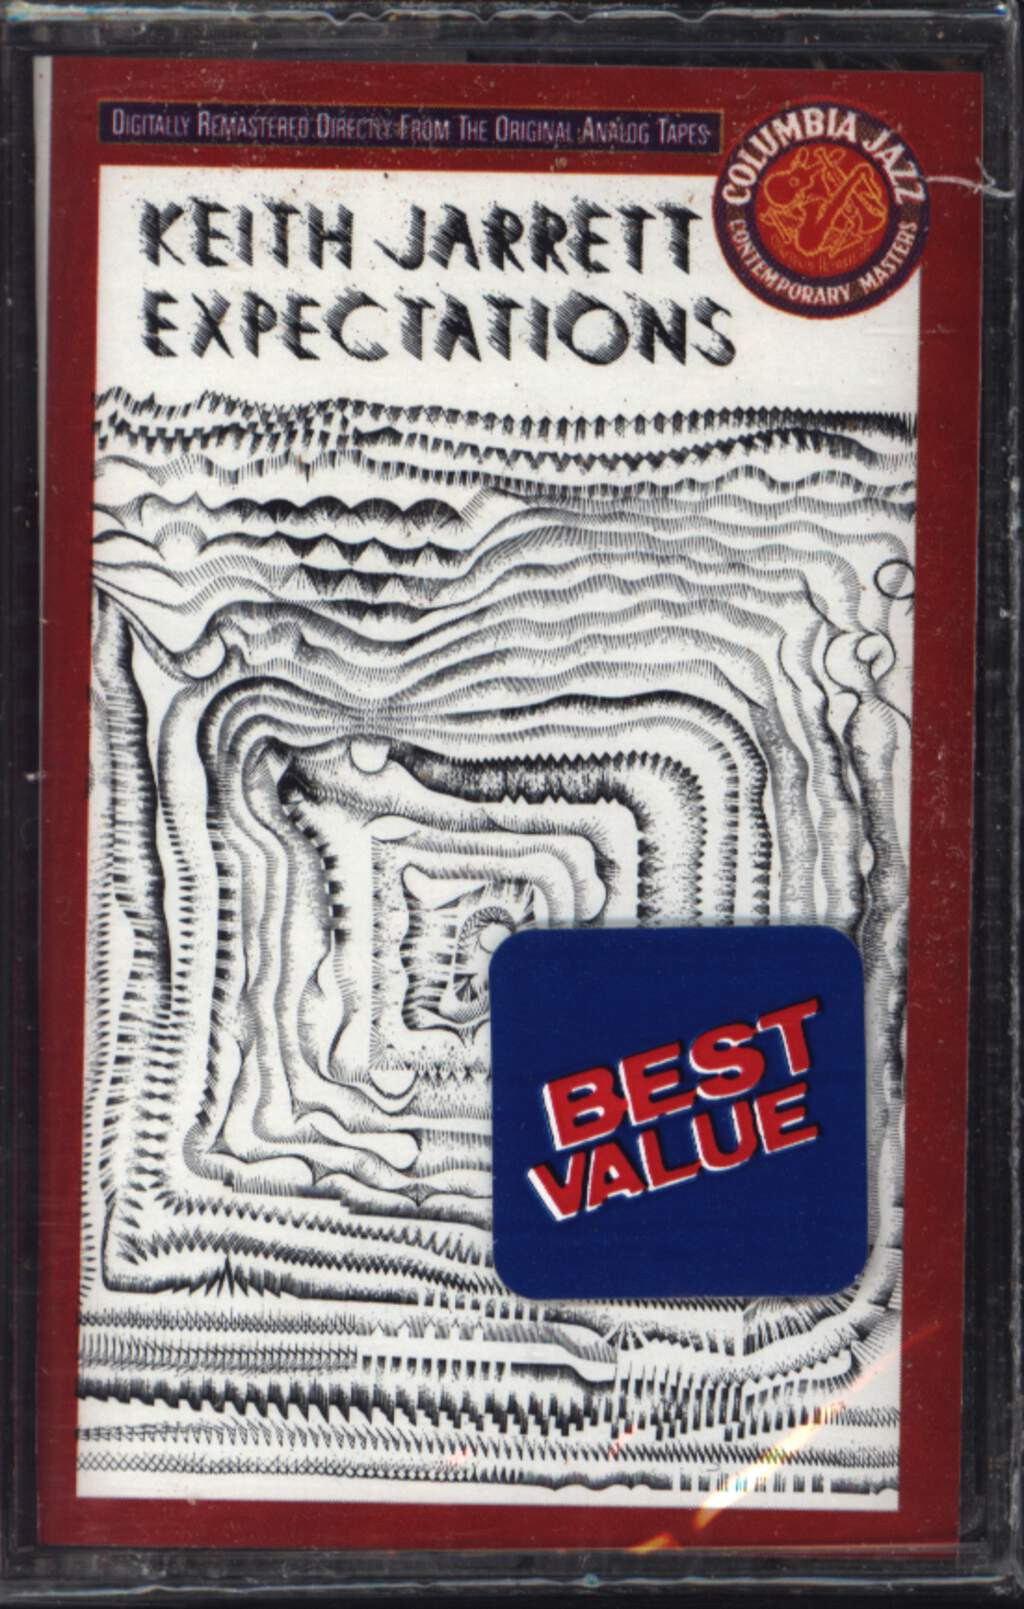 Keith Jarrett: Expectations, Compact Cassette